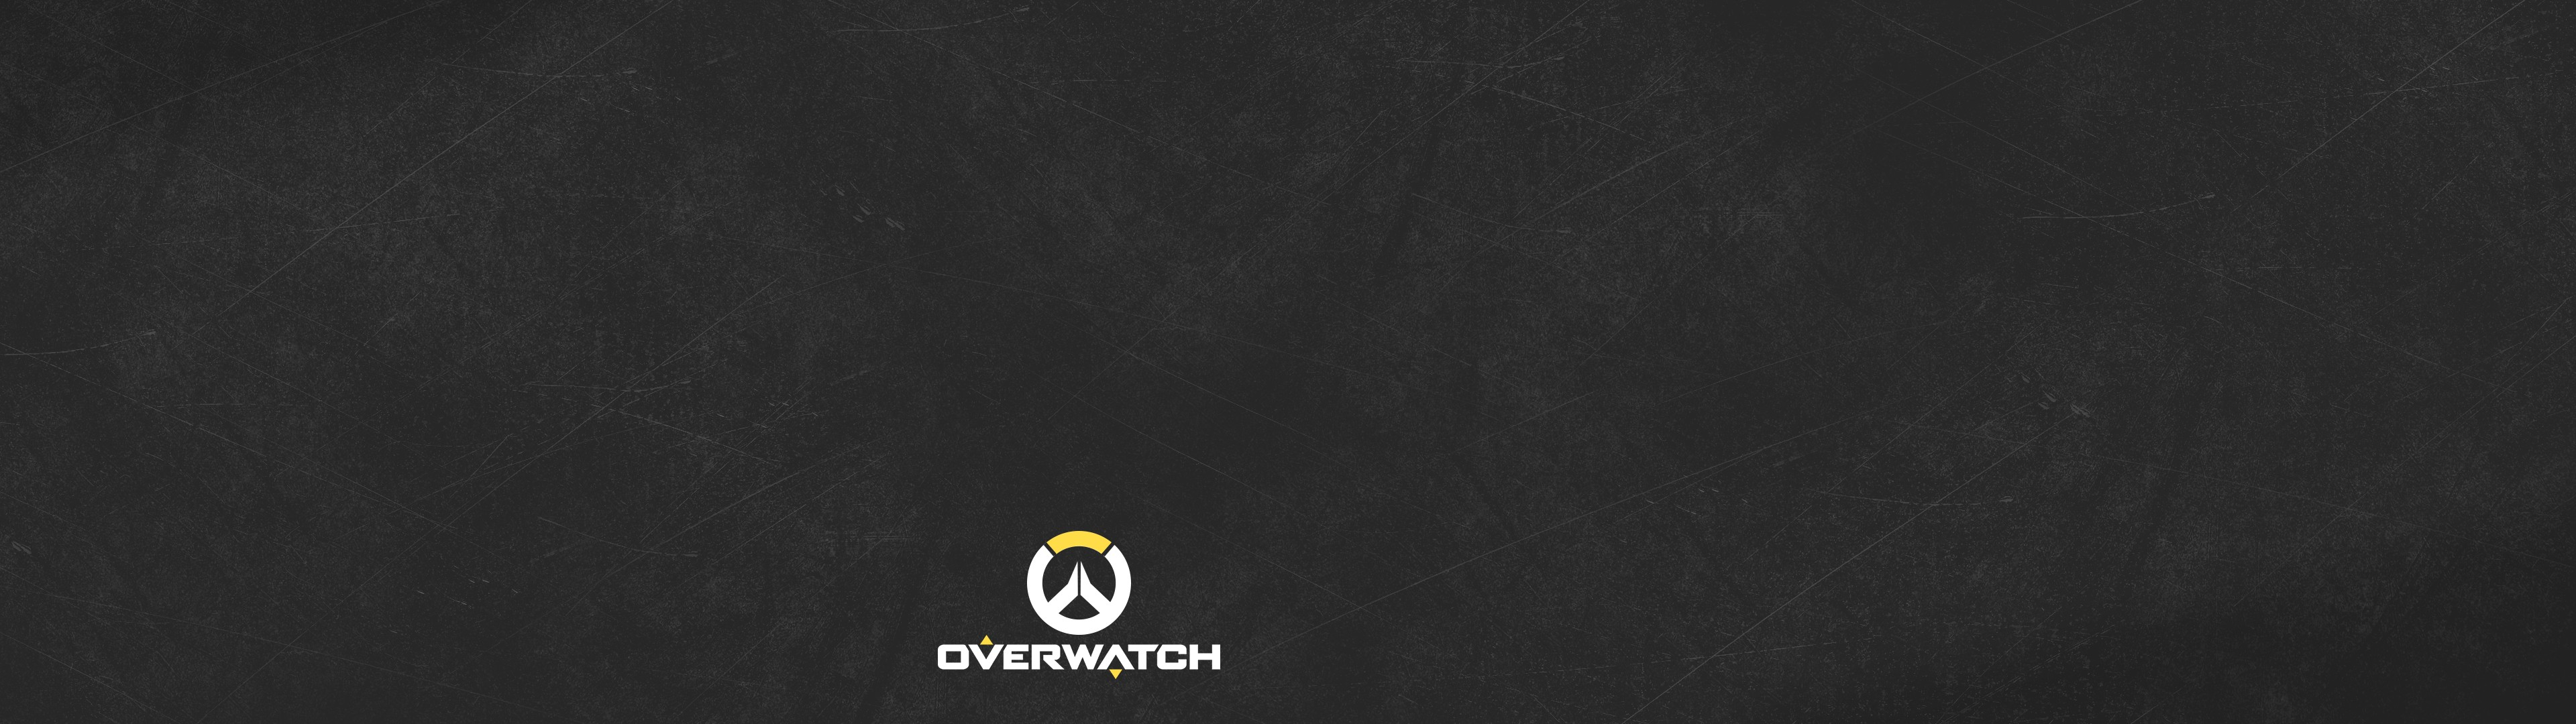 Overwatch Logo wallpaper ·① Download free cool HD